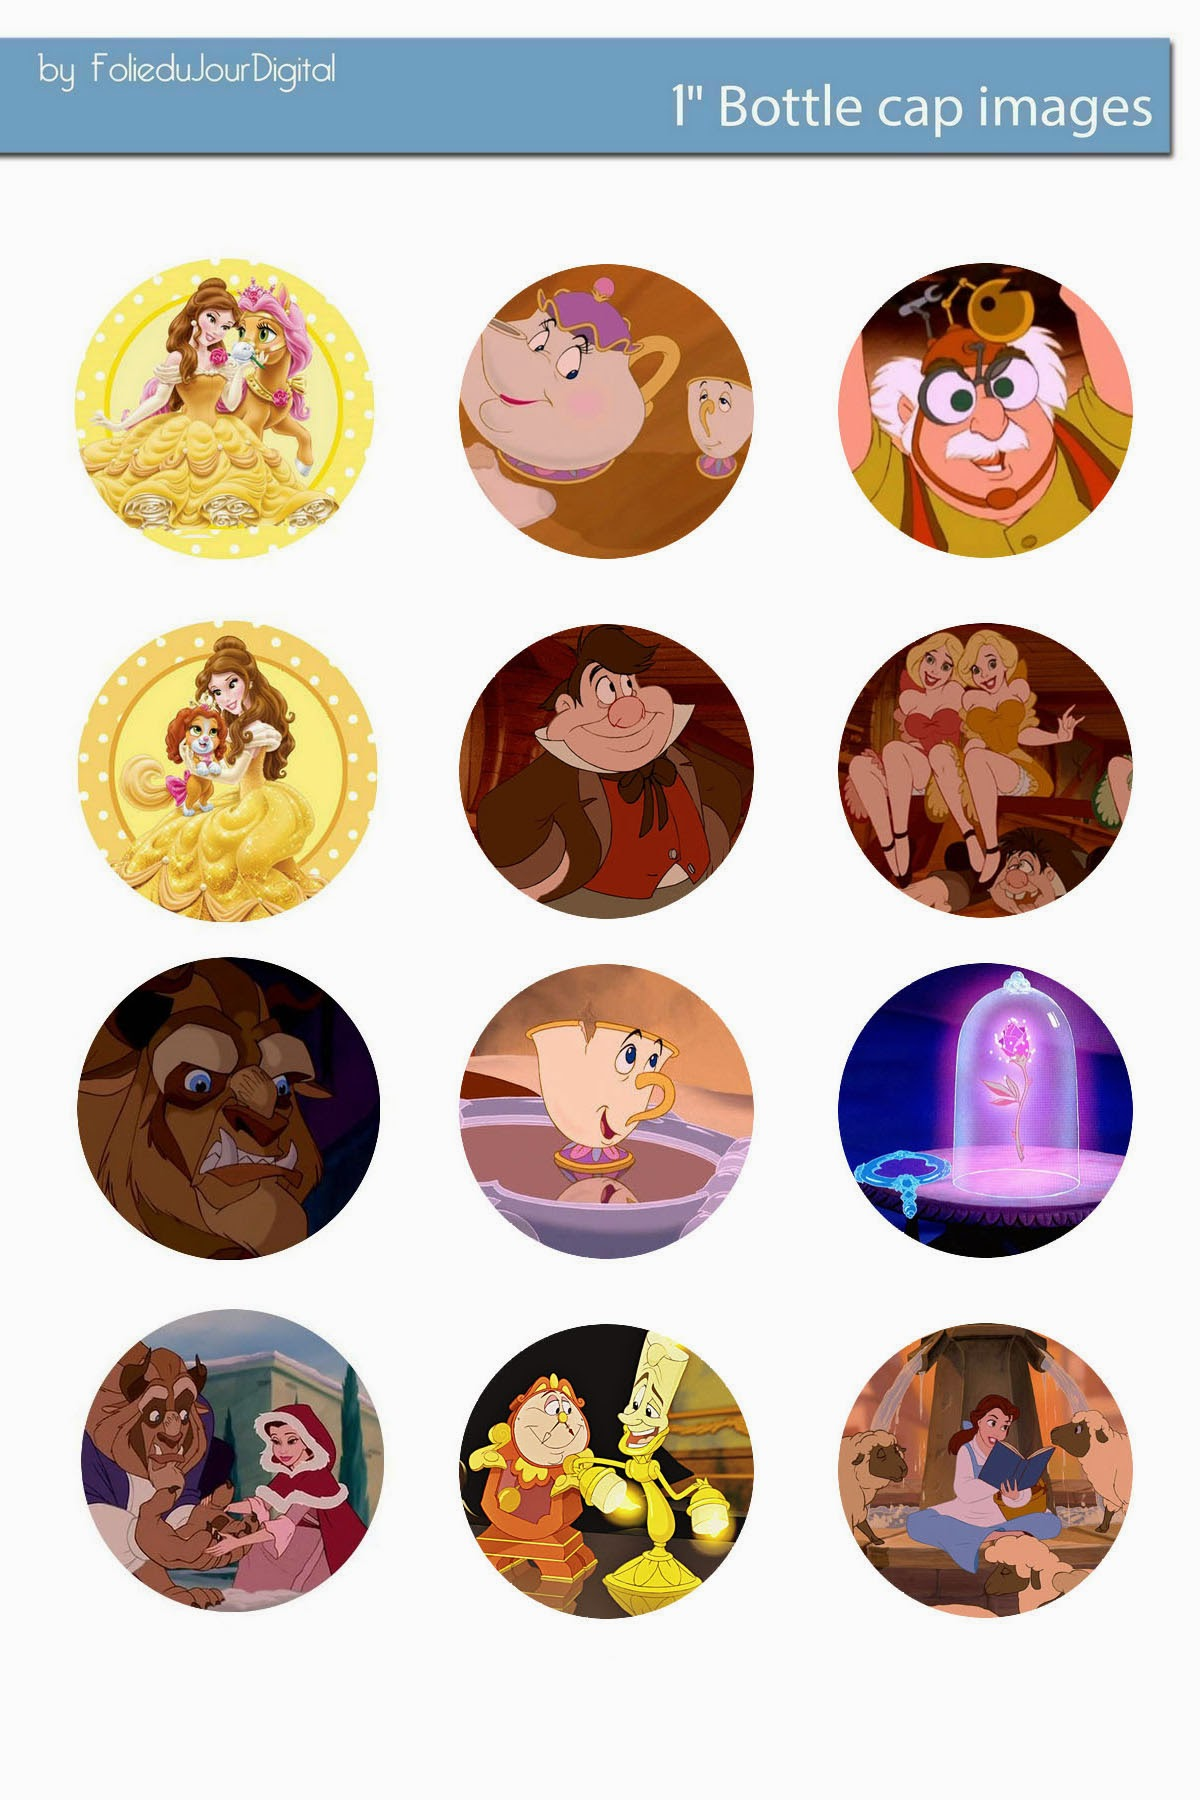 Free bottle cap images beauty and the beast free digital bottle cap for your bottle caps birthday parties bows necklace jewelry magnets paper products scrapbooking collages invitations cards newsletters maxwellsz